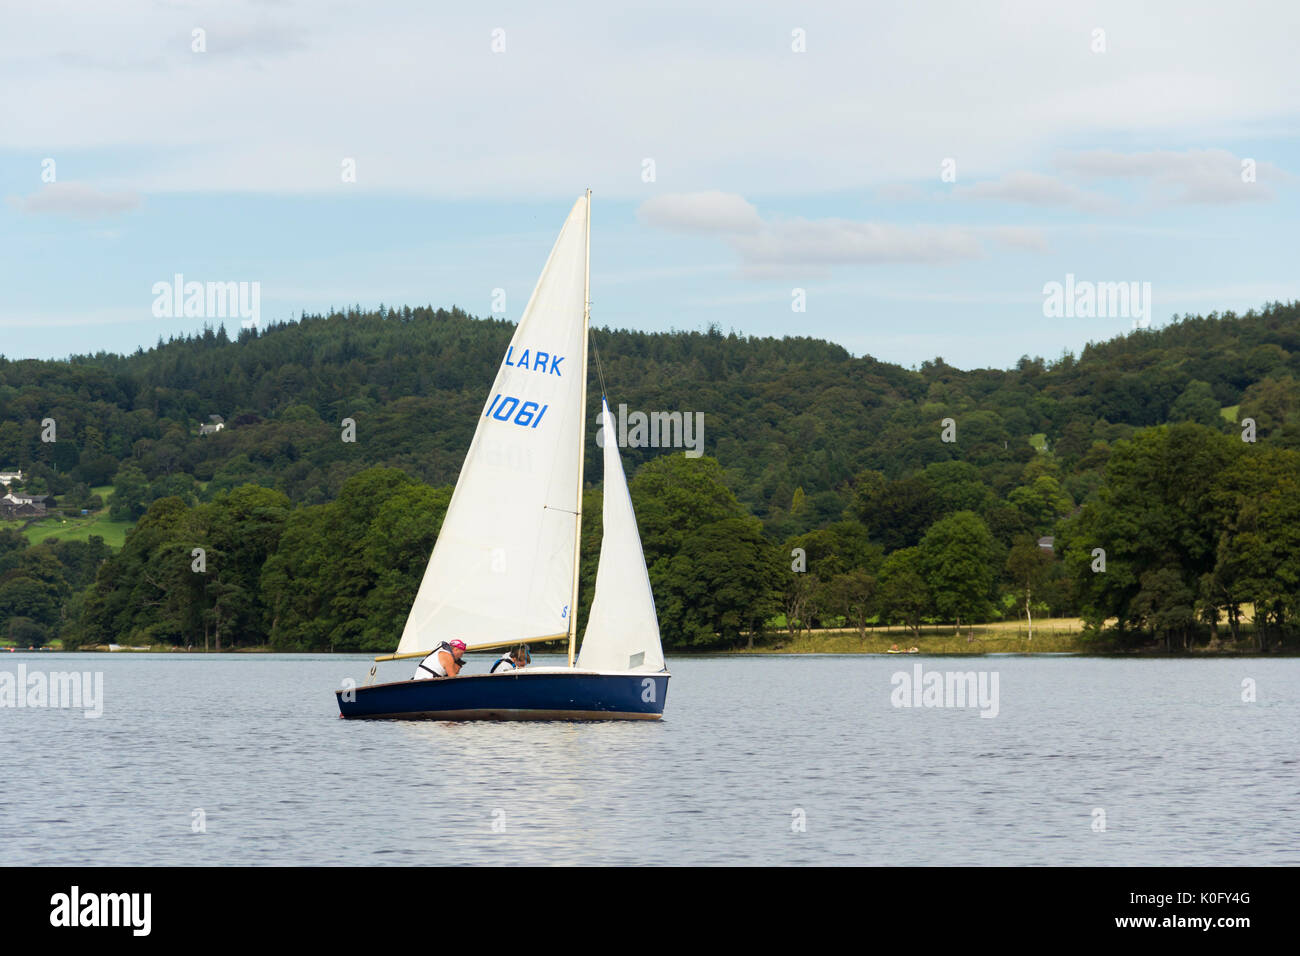 Lark class sailing dinghy in full sail on the water at the north end of Coniston Water. - Stock Image